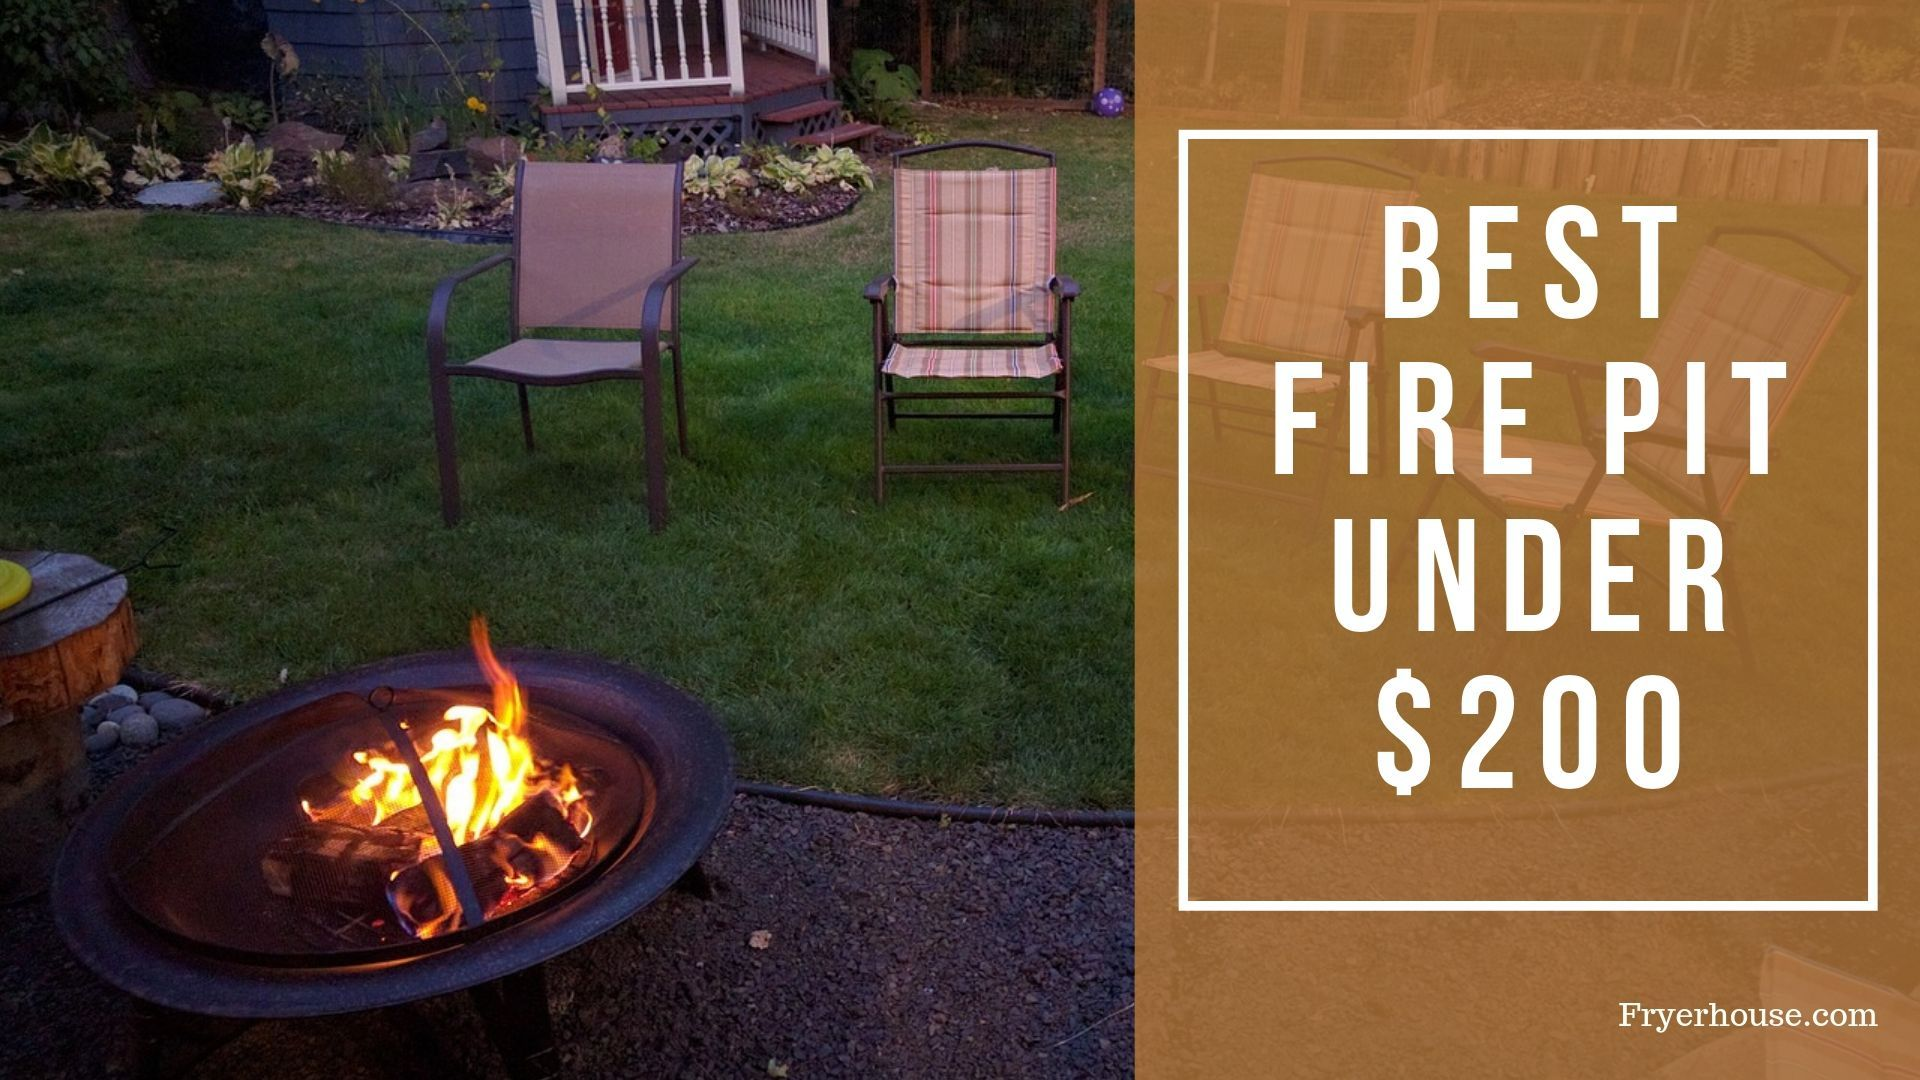 Top 10 Best Fire Pit Under 200 You Can Buy 2020 Cool Fire Pits Fire Pit Fire